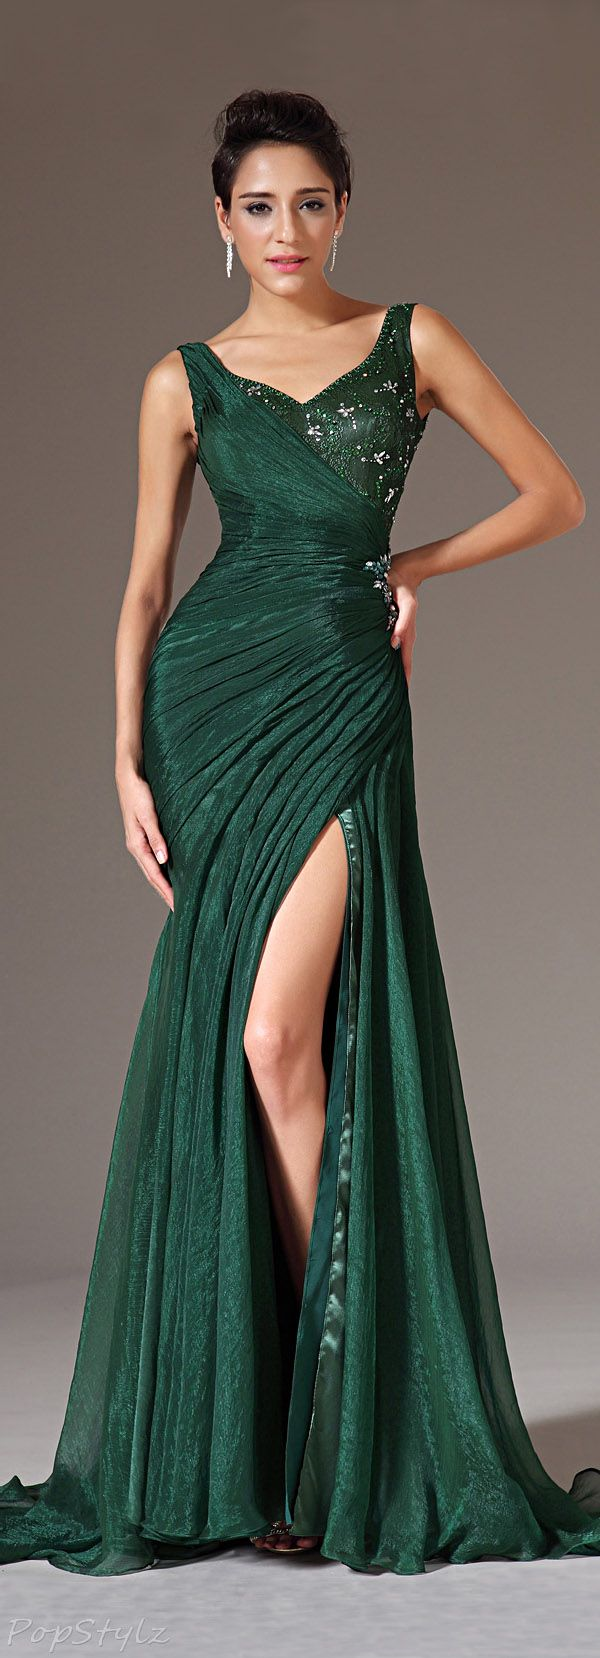 Best 25+ Chiffon evening dresses ideas on Pinterest | Silver ball ...